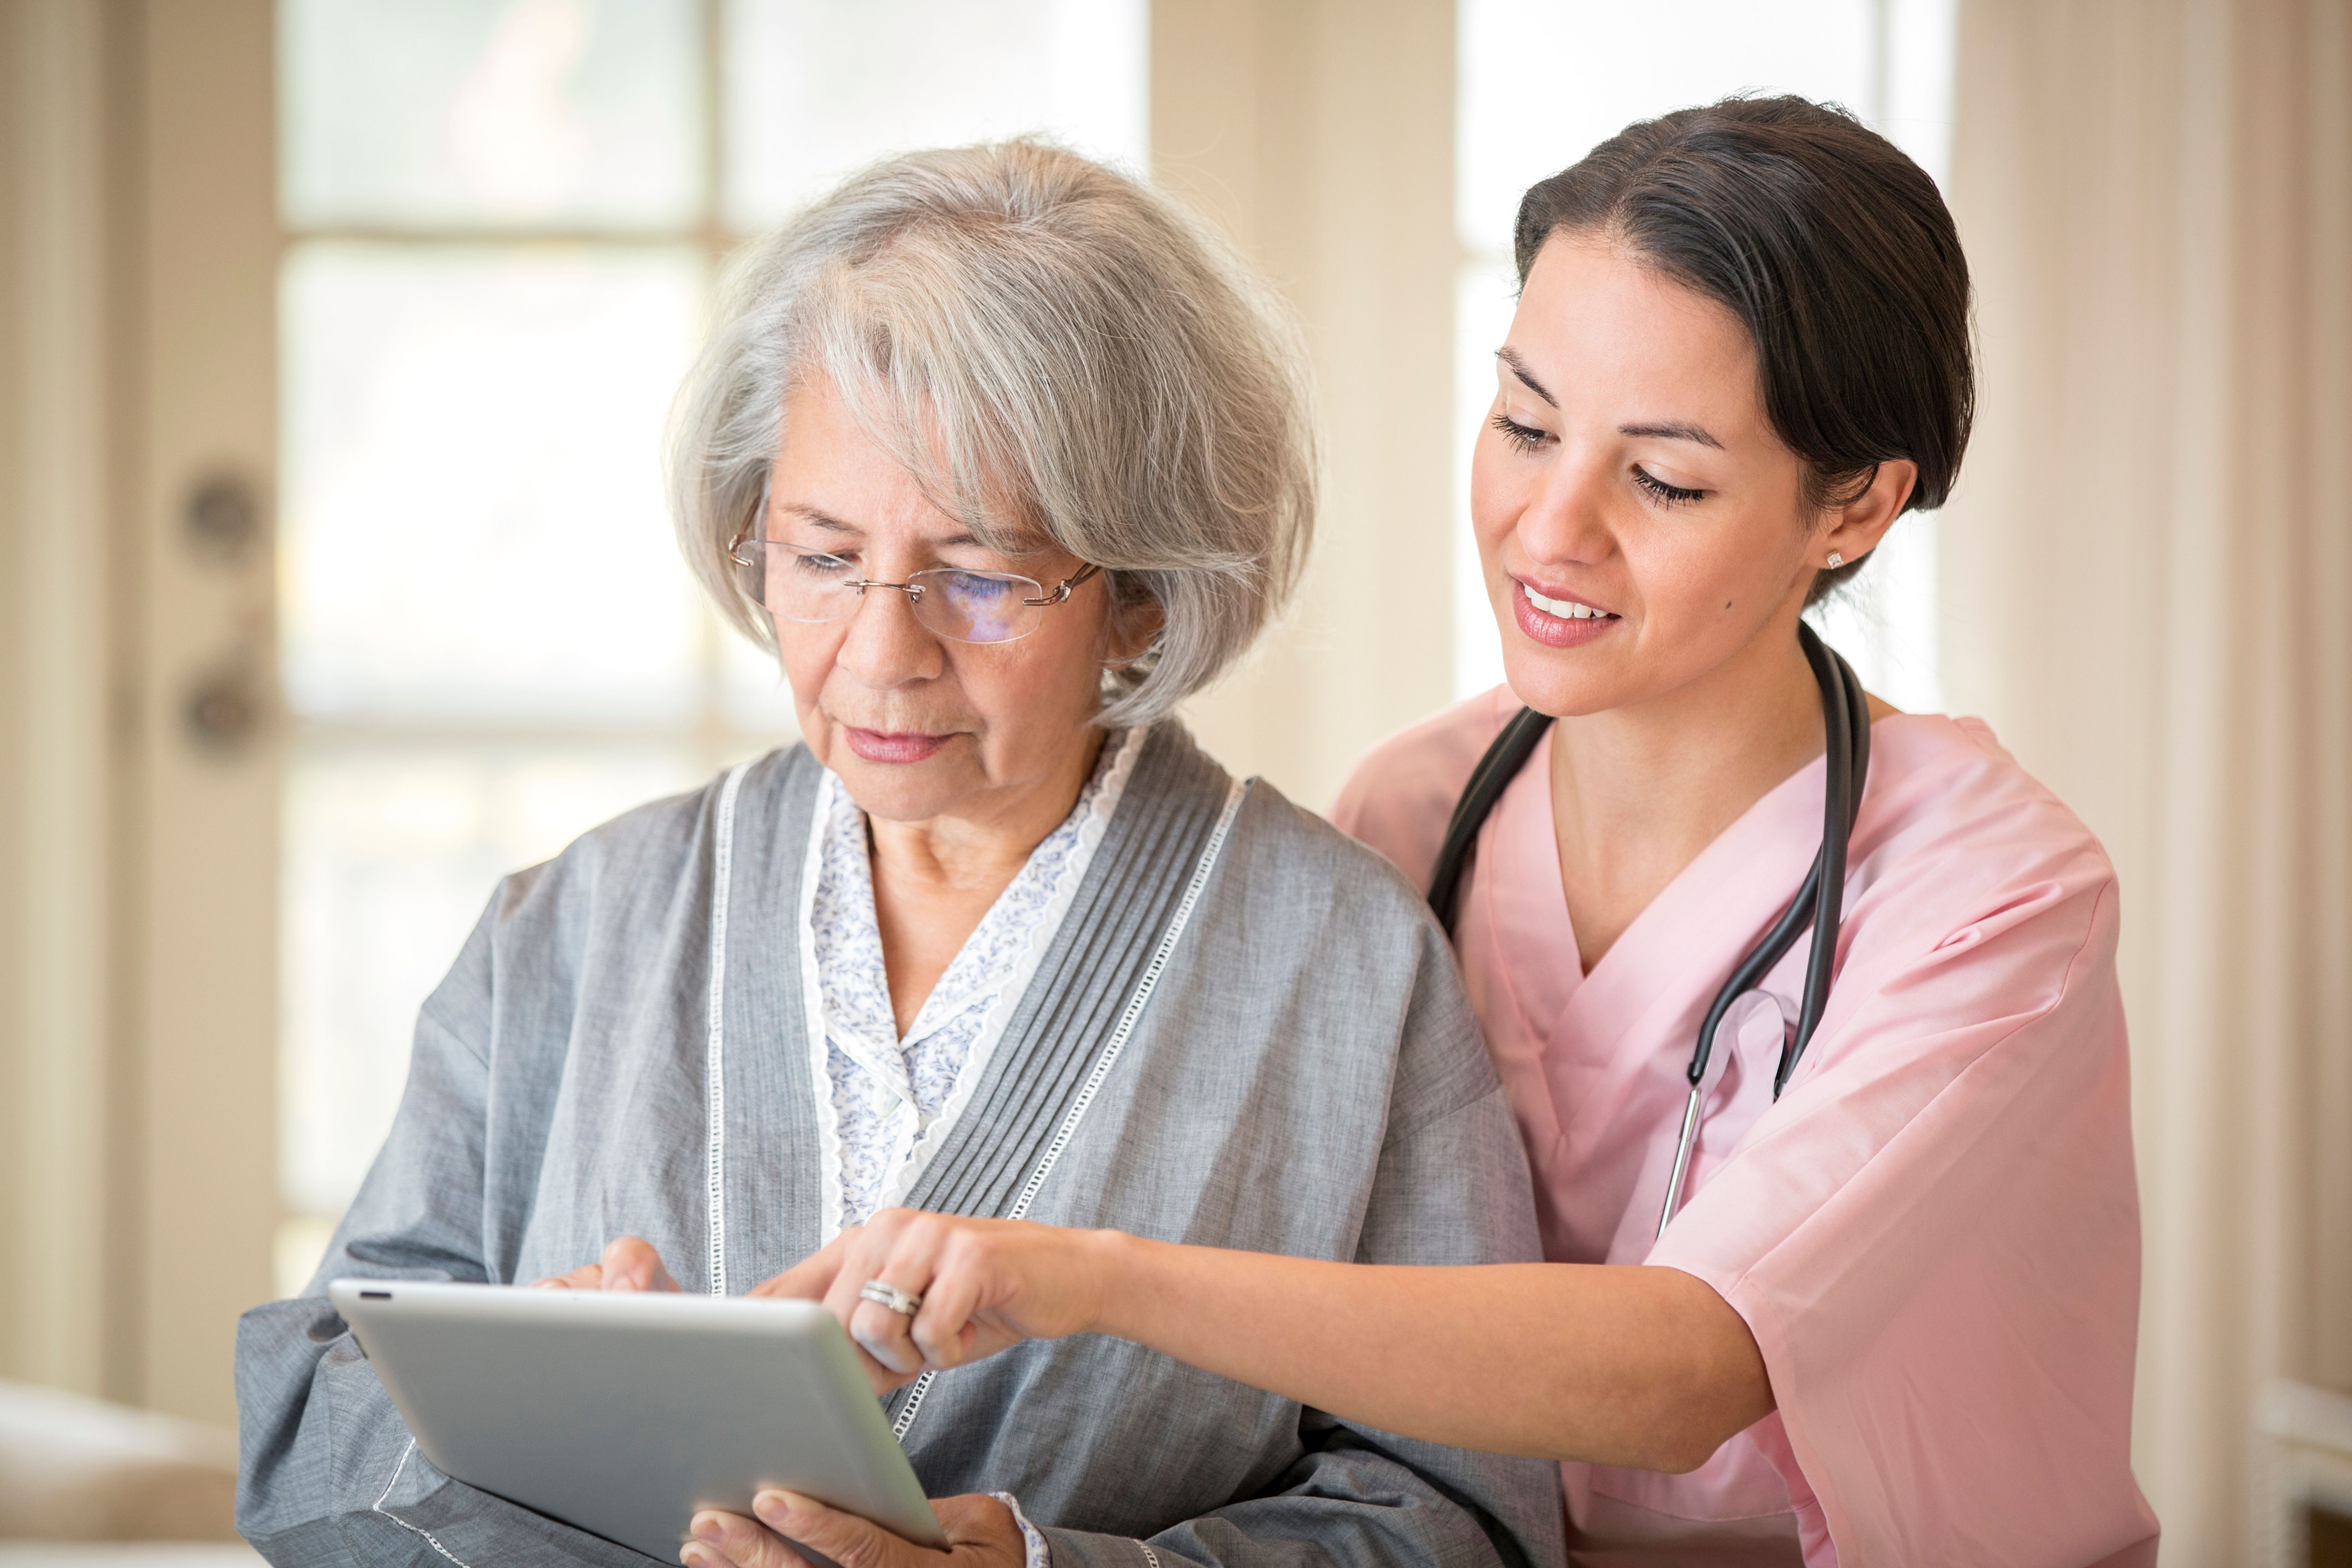 A female nurse shows an elderly woman how to use a tablet.